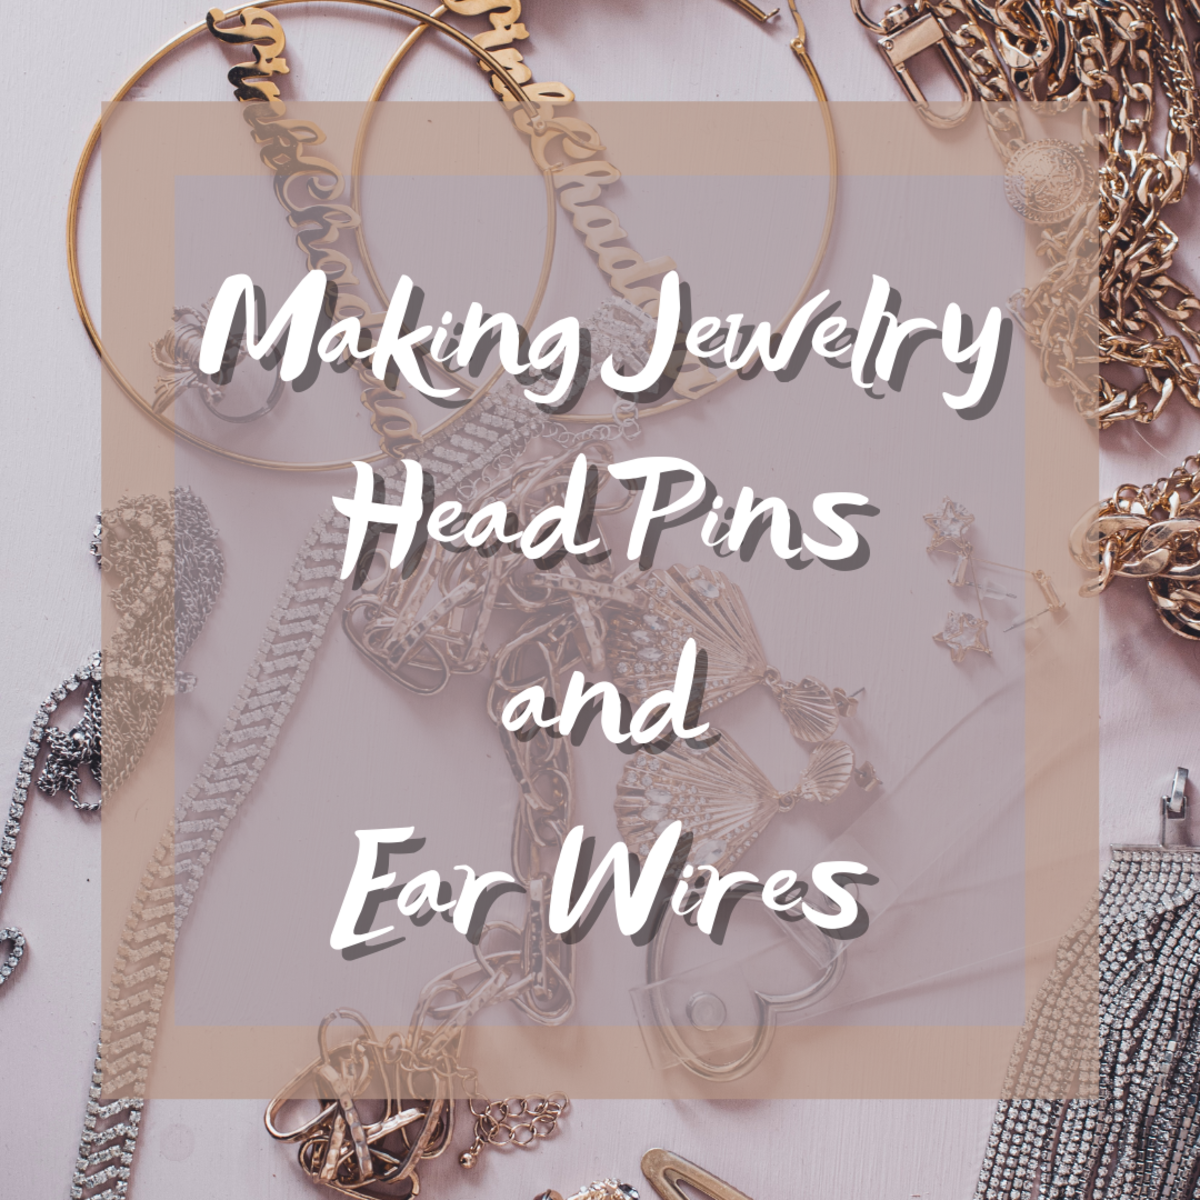 This tutorial will teach you how to easily create your own balled headpins and ear wires for jewelry.